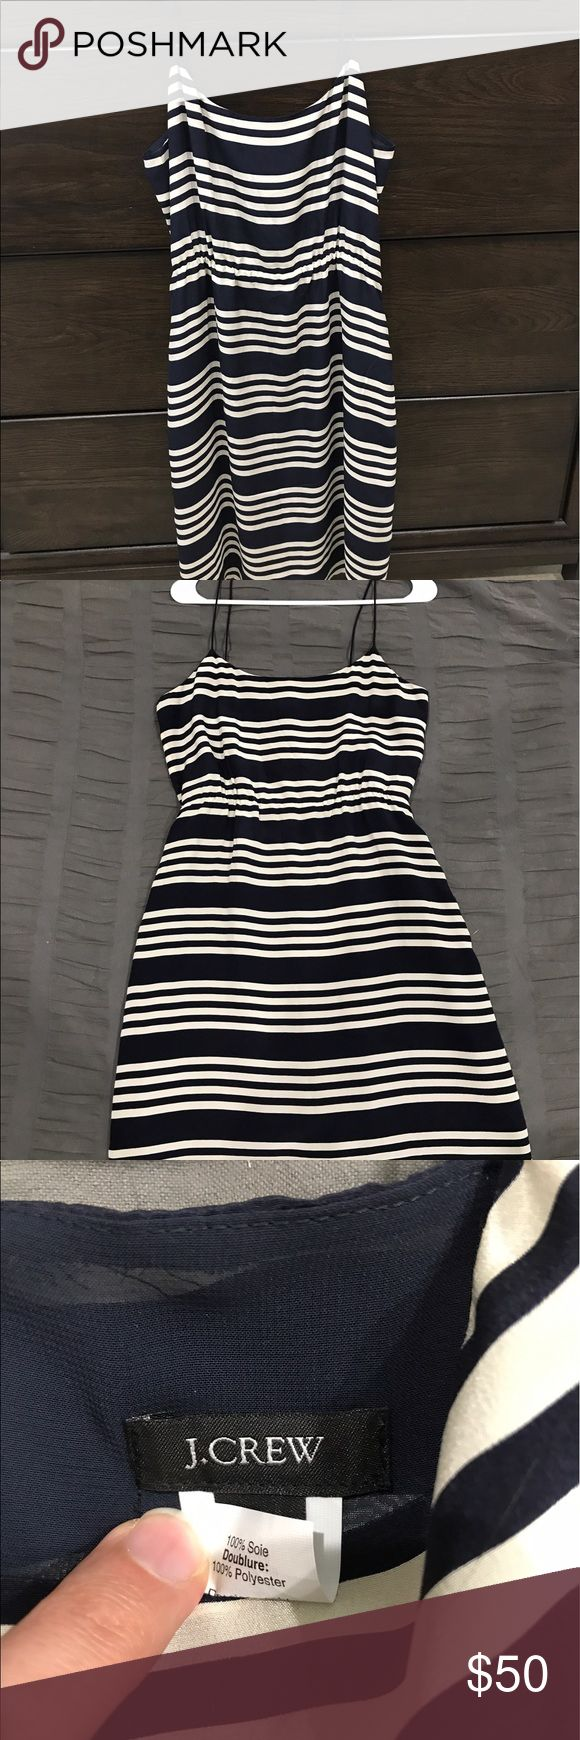 J Crew dress Cute and festive navy striped dress. Perfect length and great on own or layered under a sweater J. Crew Dresses